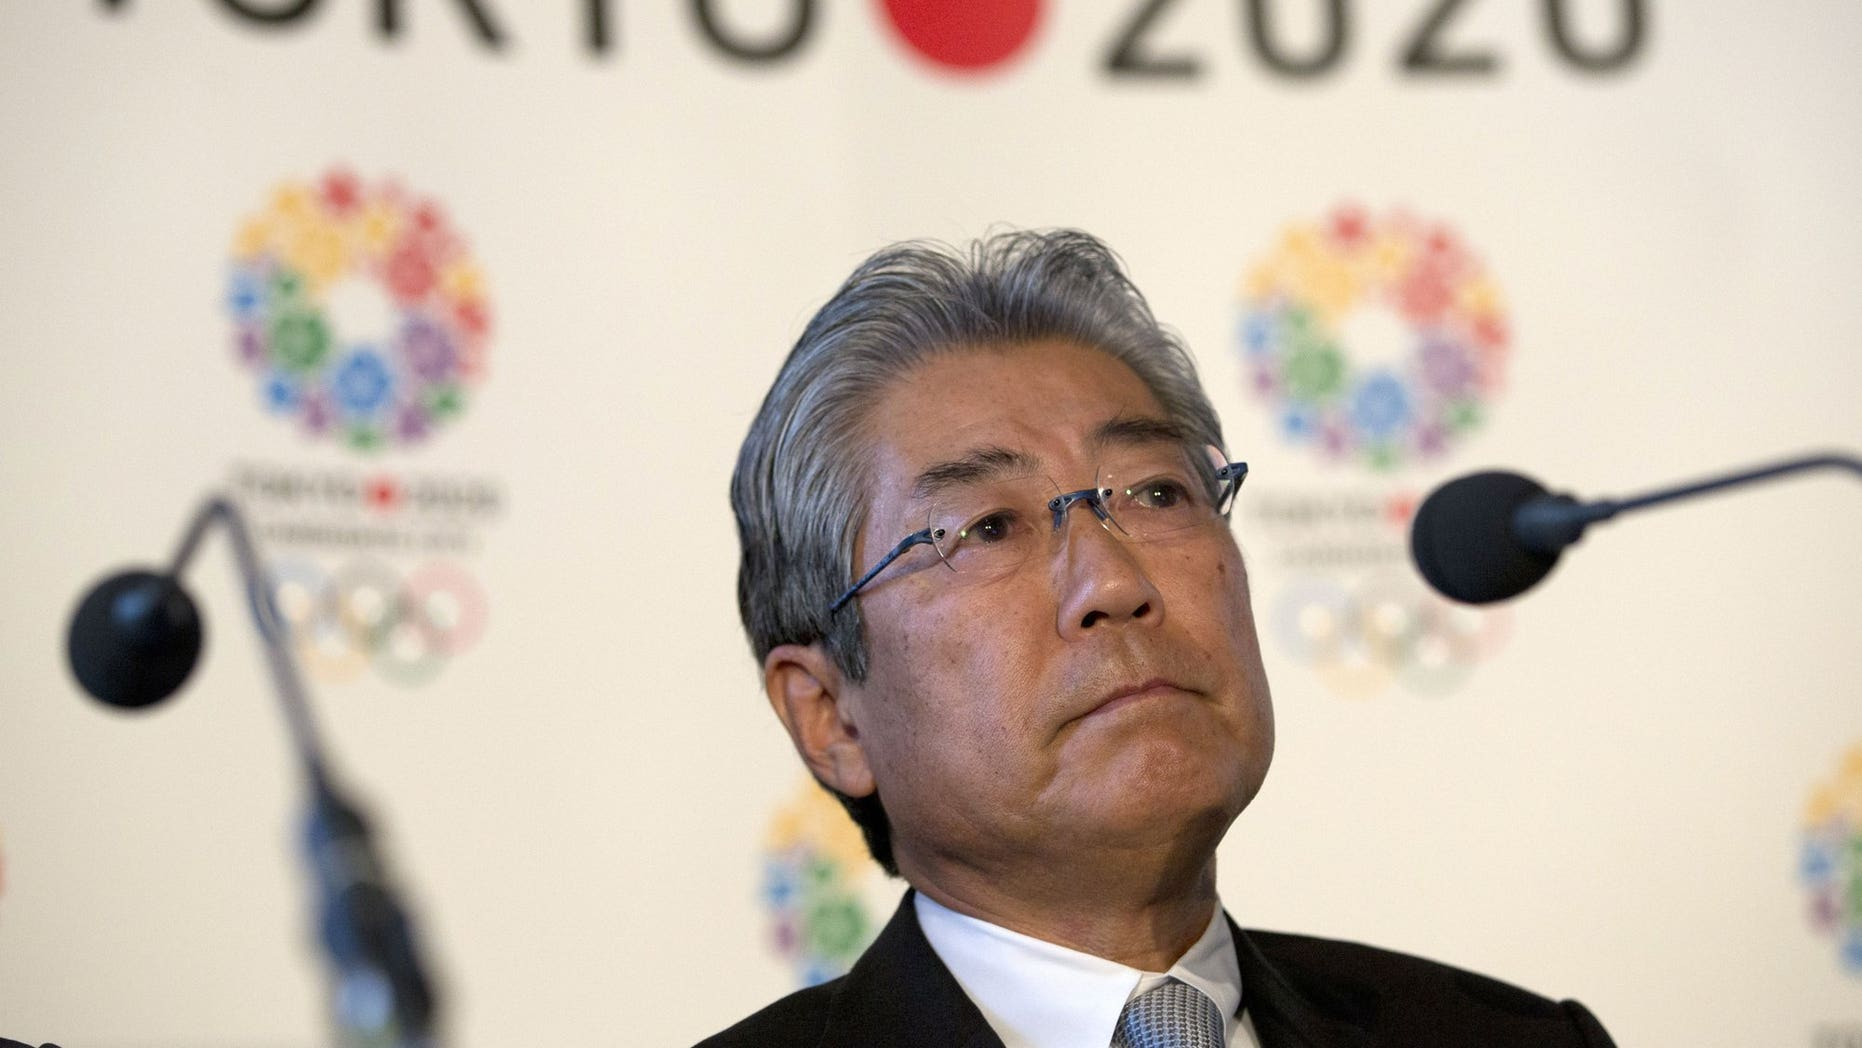 Head of Japan's Olympic Committee indicted in France over corruption allegations